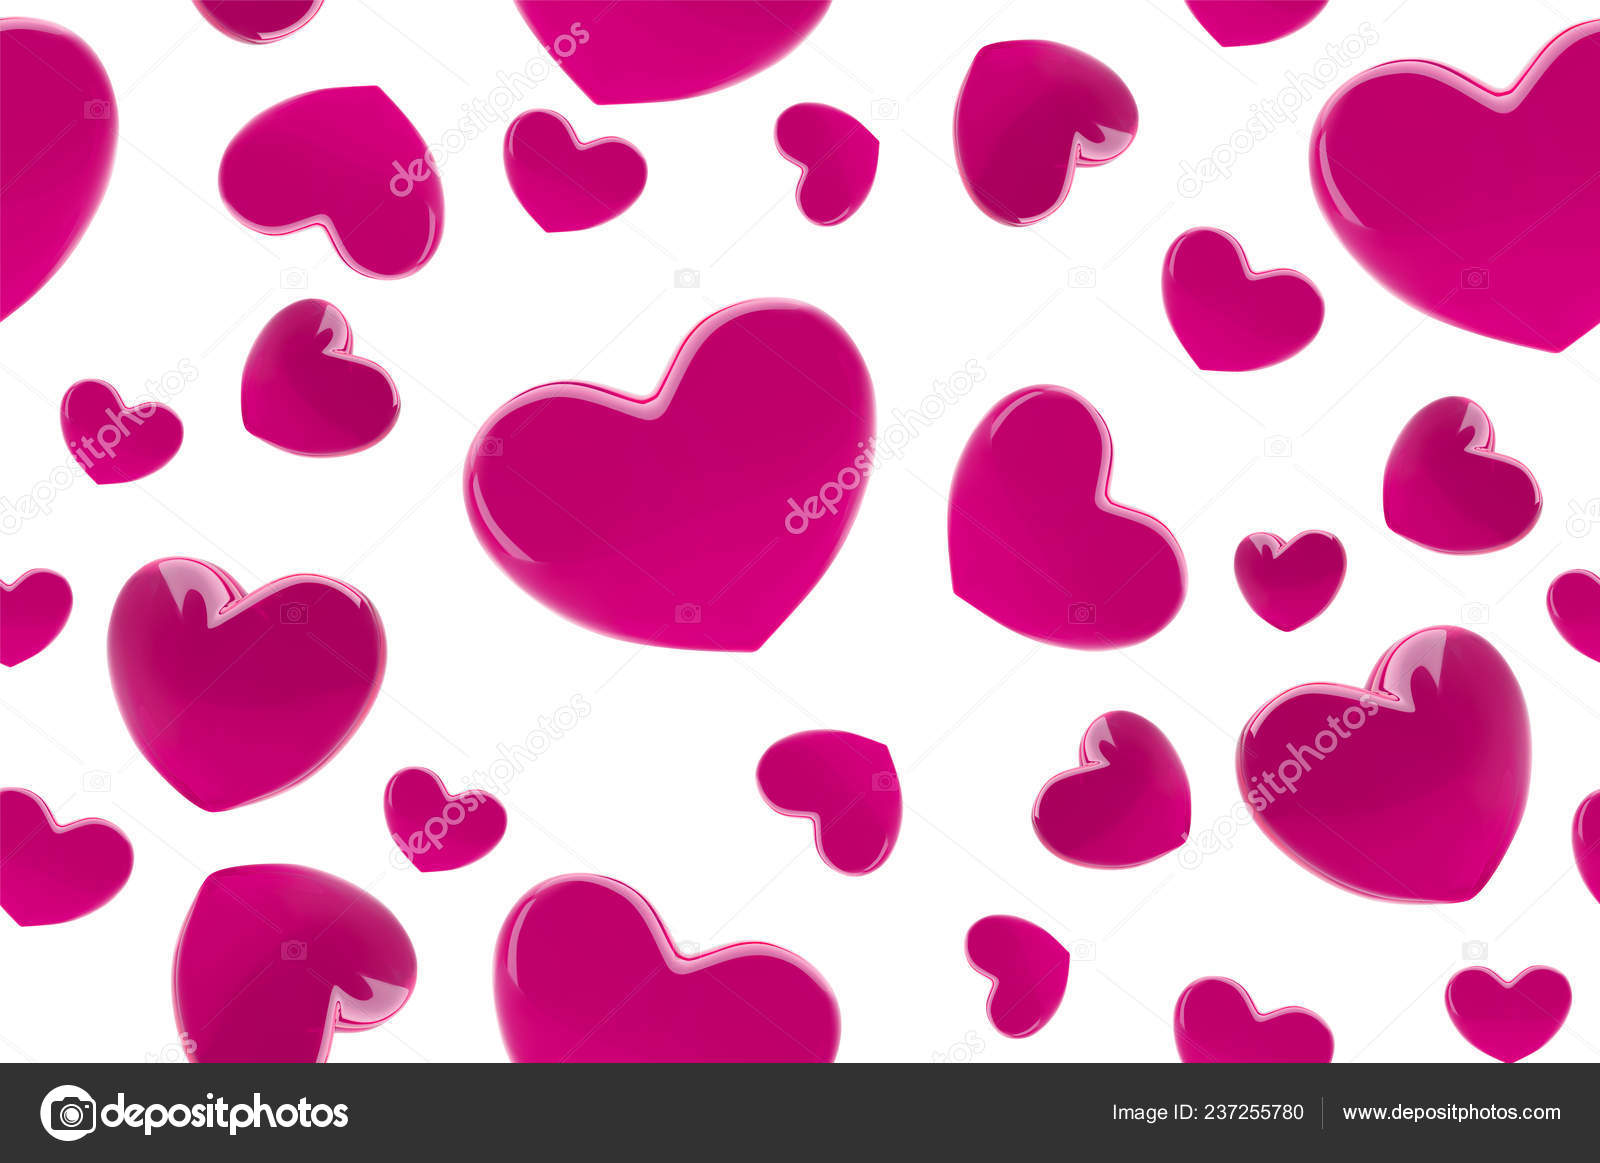 Valentines Day Hearts Seamless Pattern Background With Pink 3d Realistic Hearts Beautiful Abstract Wallpaper Valentine Day Love Card Vector Illustration Vector Cute Romantic Banner Design Stock Vector C Volmon Tut By 237255780